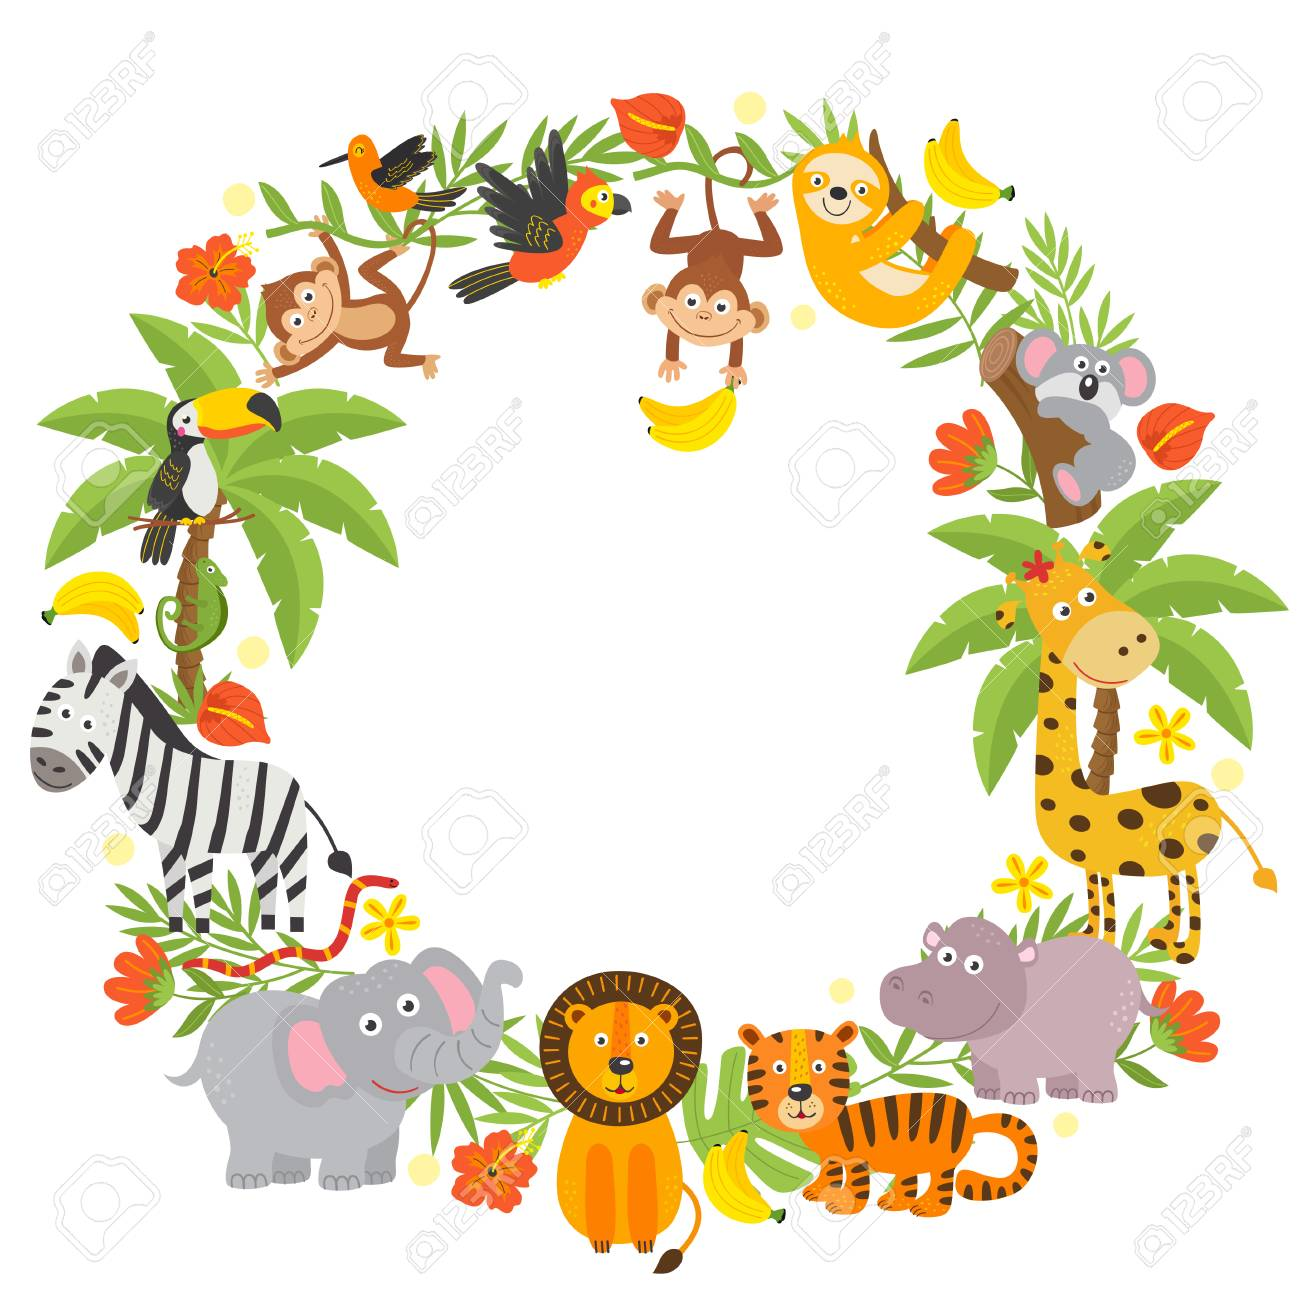 frame with jungle animals - 104927229